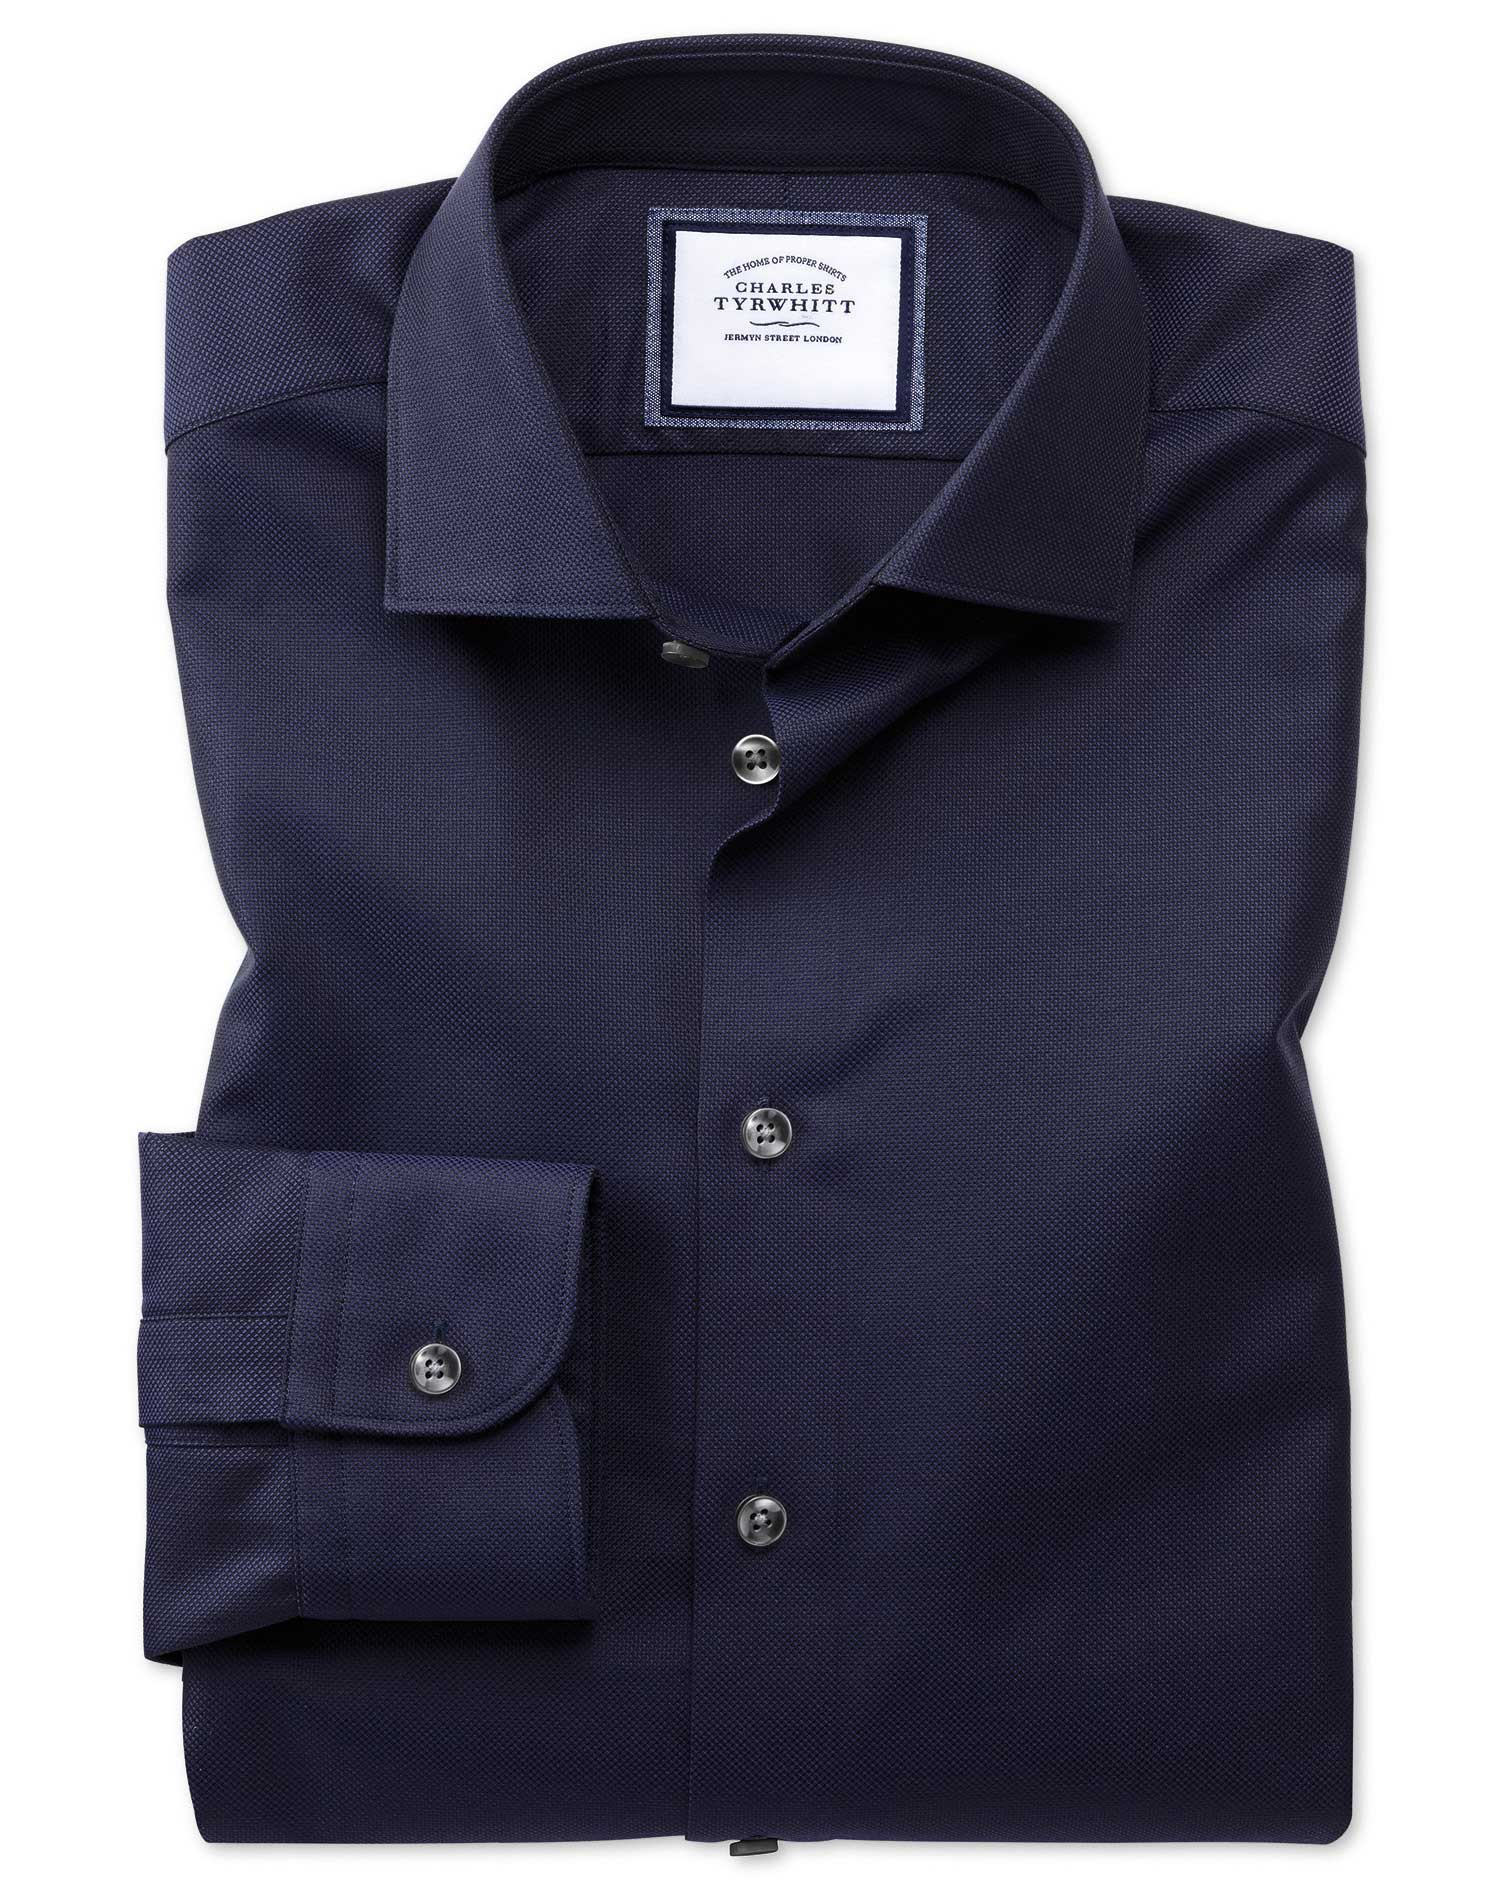 Extra Slim Fit Semi-Cutaway Business Casual Navy Textured Egyptian Cotton Formal Shirt Single Cuff S